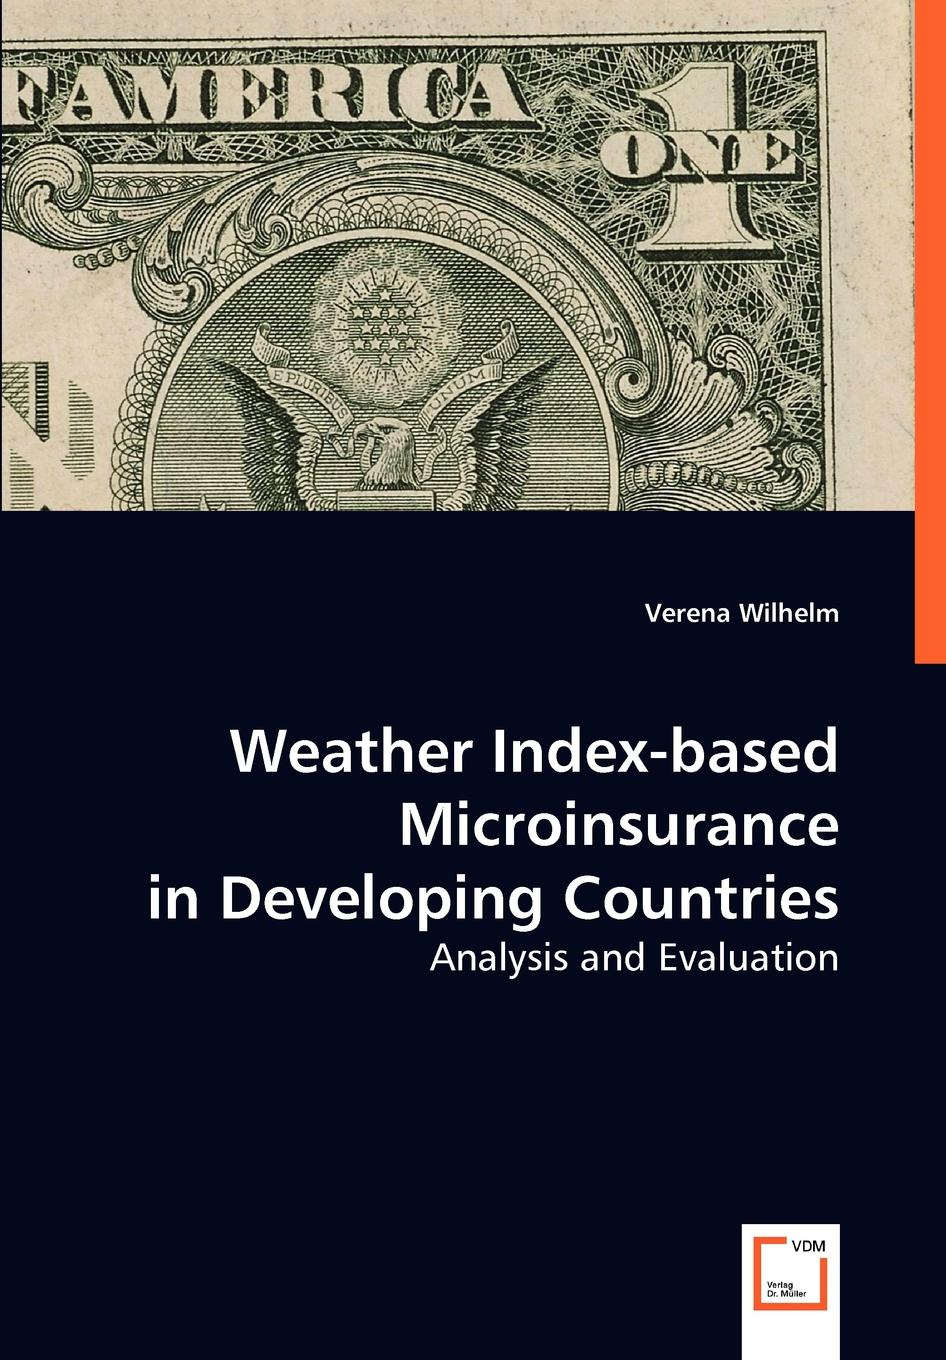 Verena Wilhelm Weather Index-based Micro Insurance in Developing Countries optimal health strategy in poorest developing countries